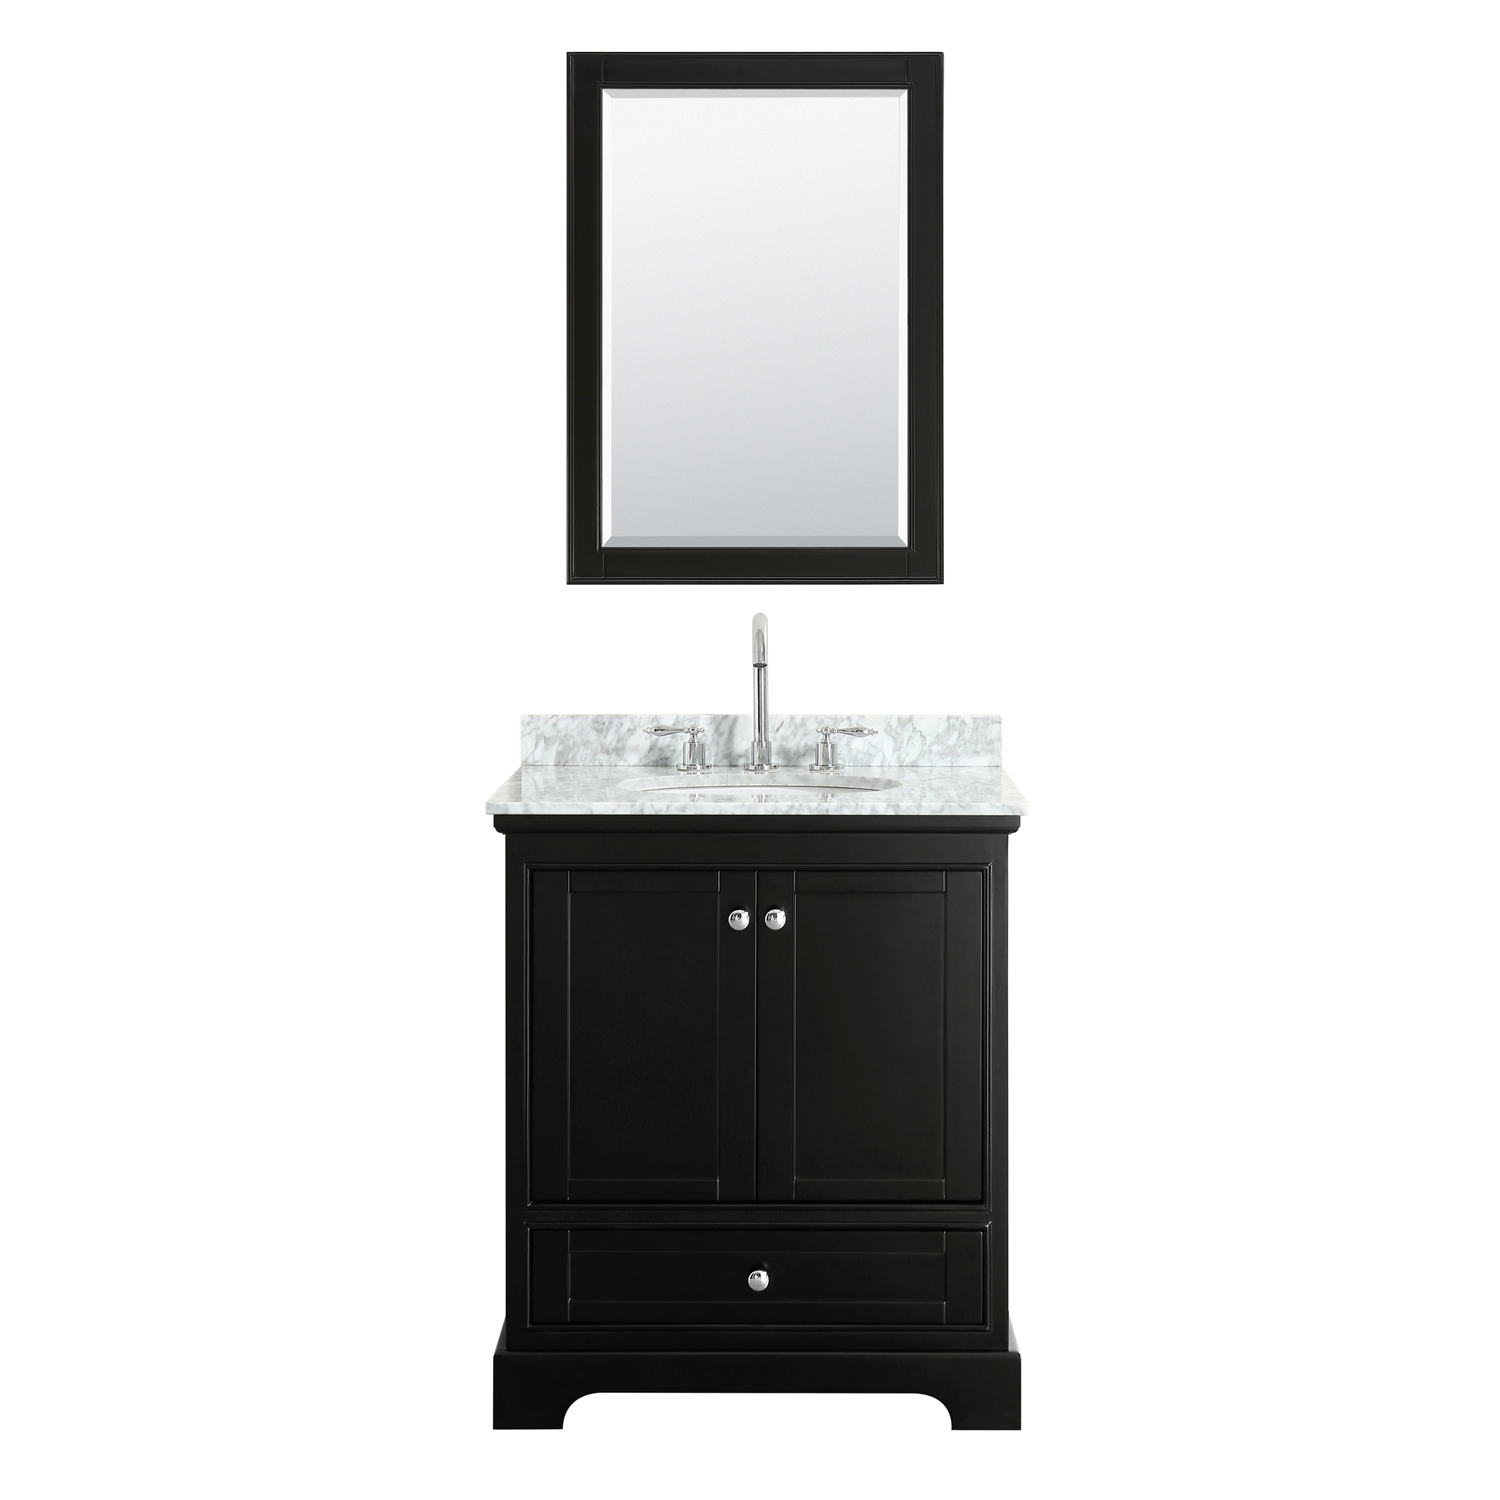 """30"""" Single Bathroom Vanity in White Carrara Marble Countertop with Undermount Porcelain Sink, Medicine Cabinet, Mirror and Color Options"""